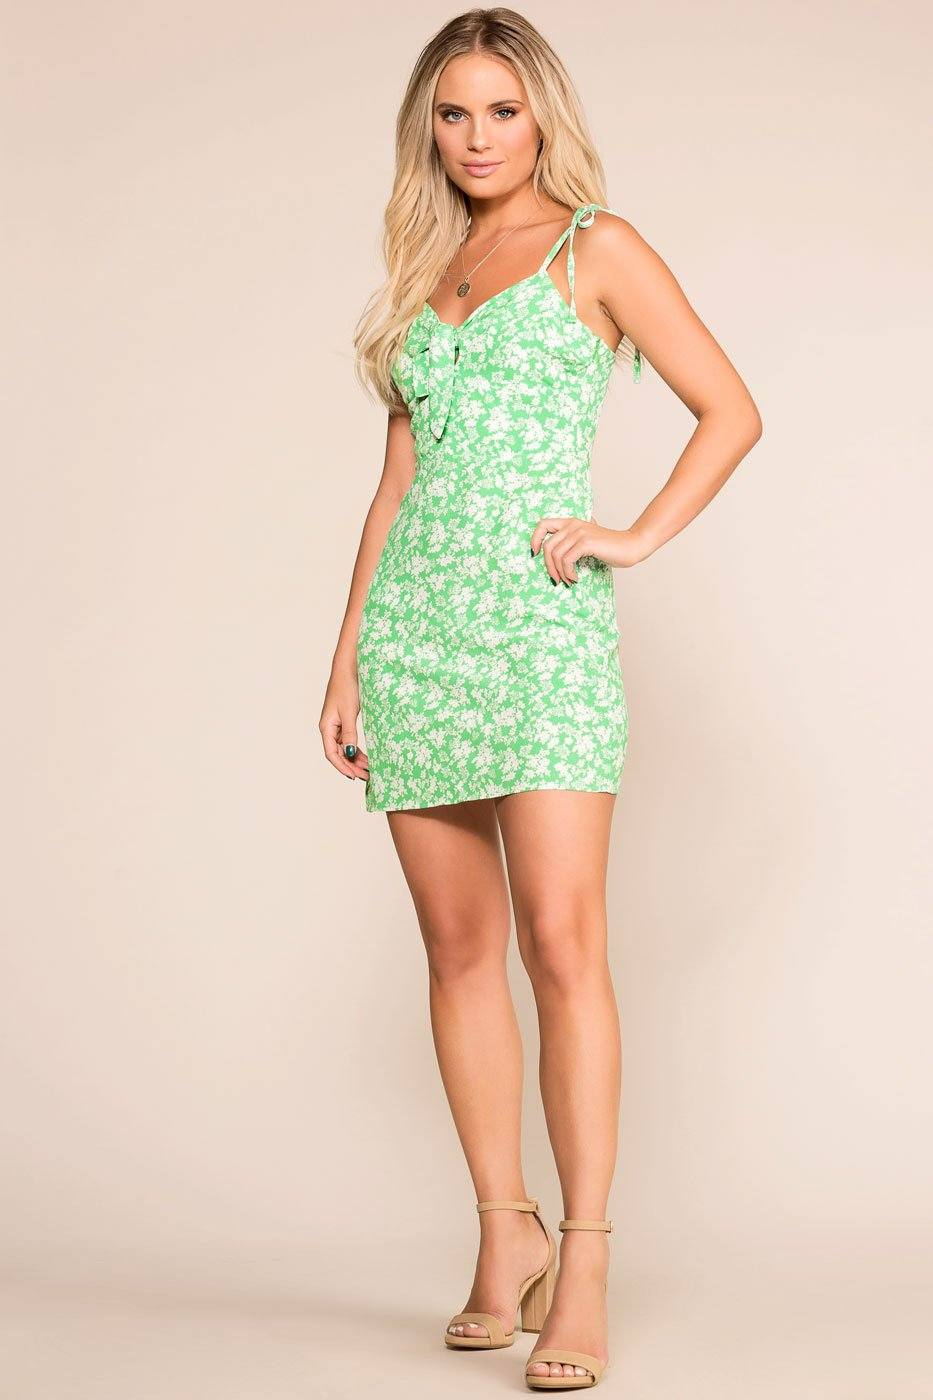 In The Garden Green Floral Sun Dress | Cotton Candy LA